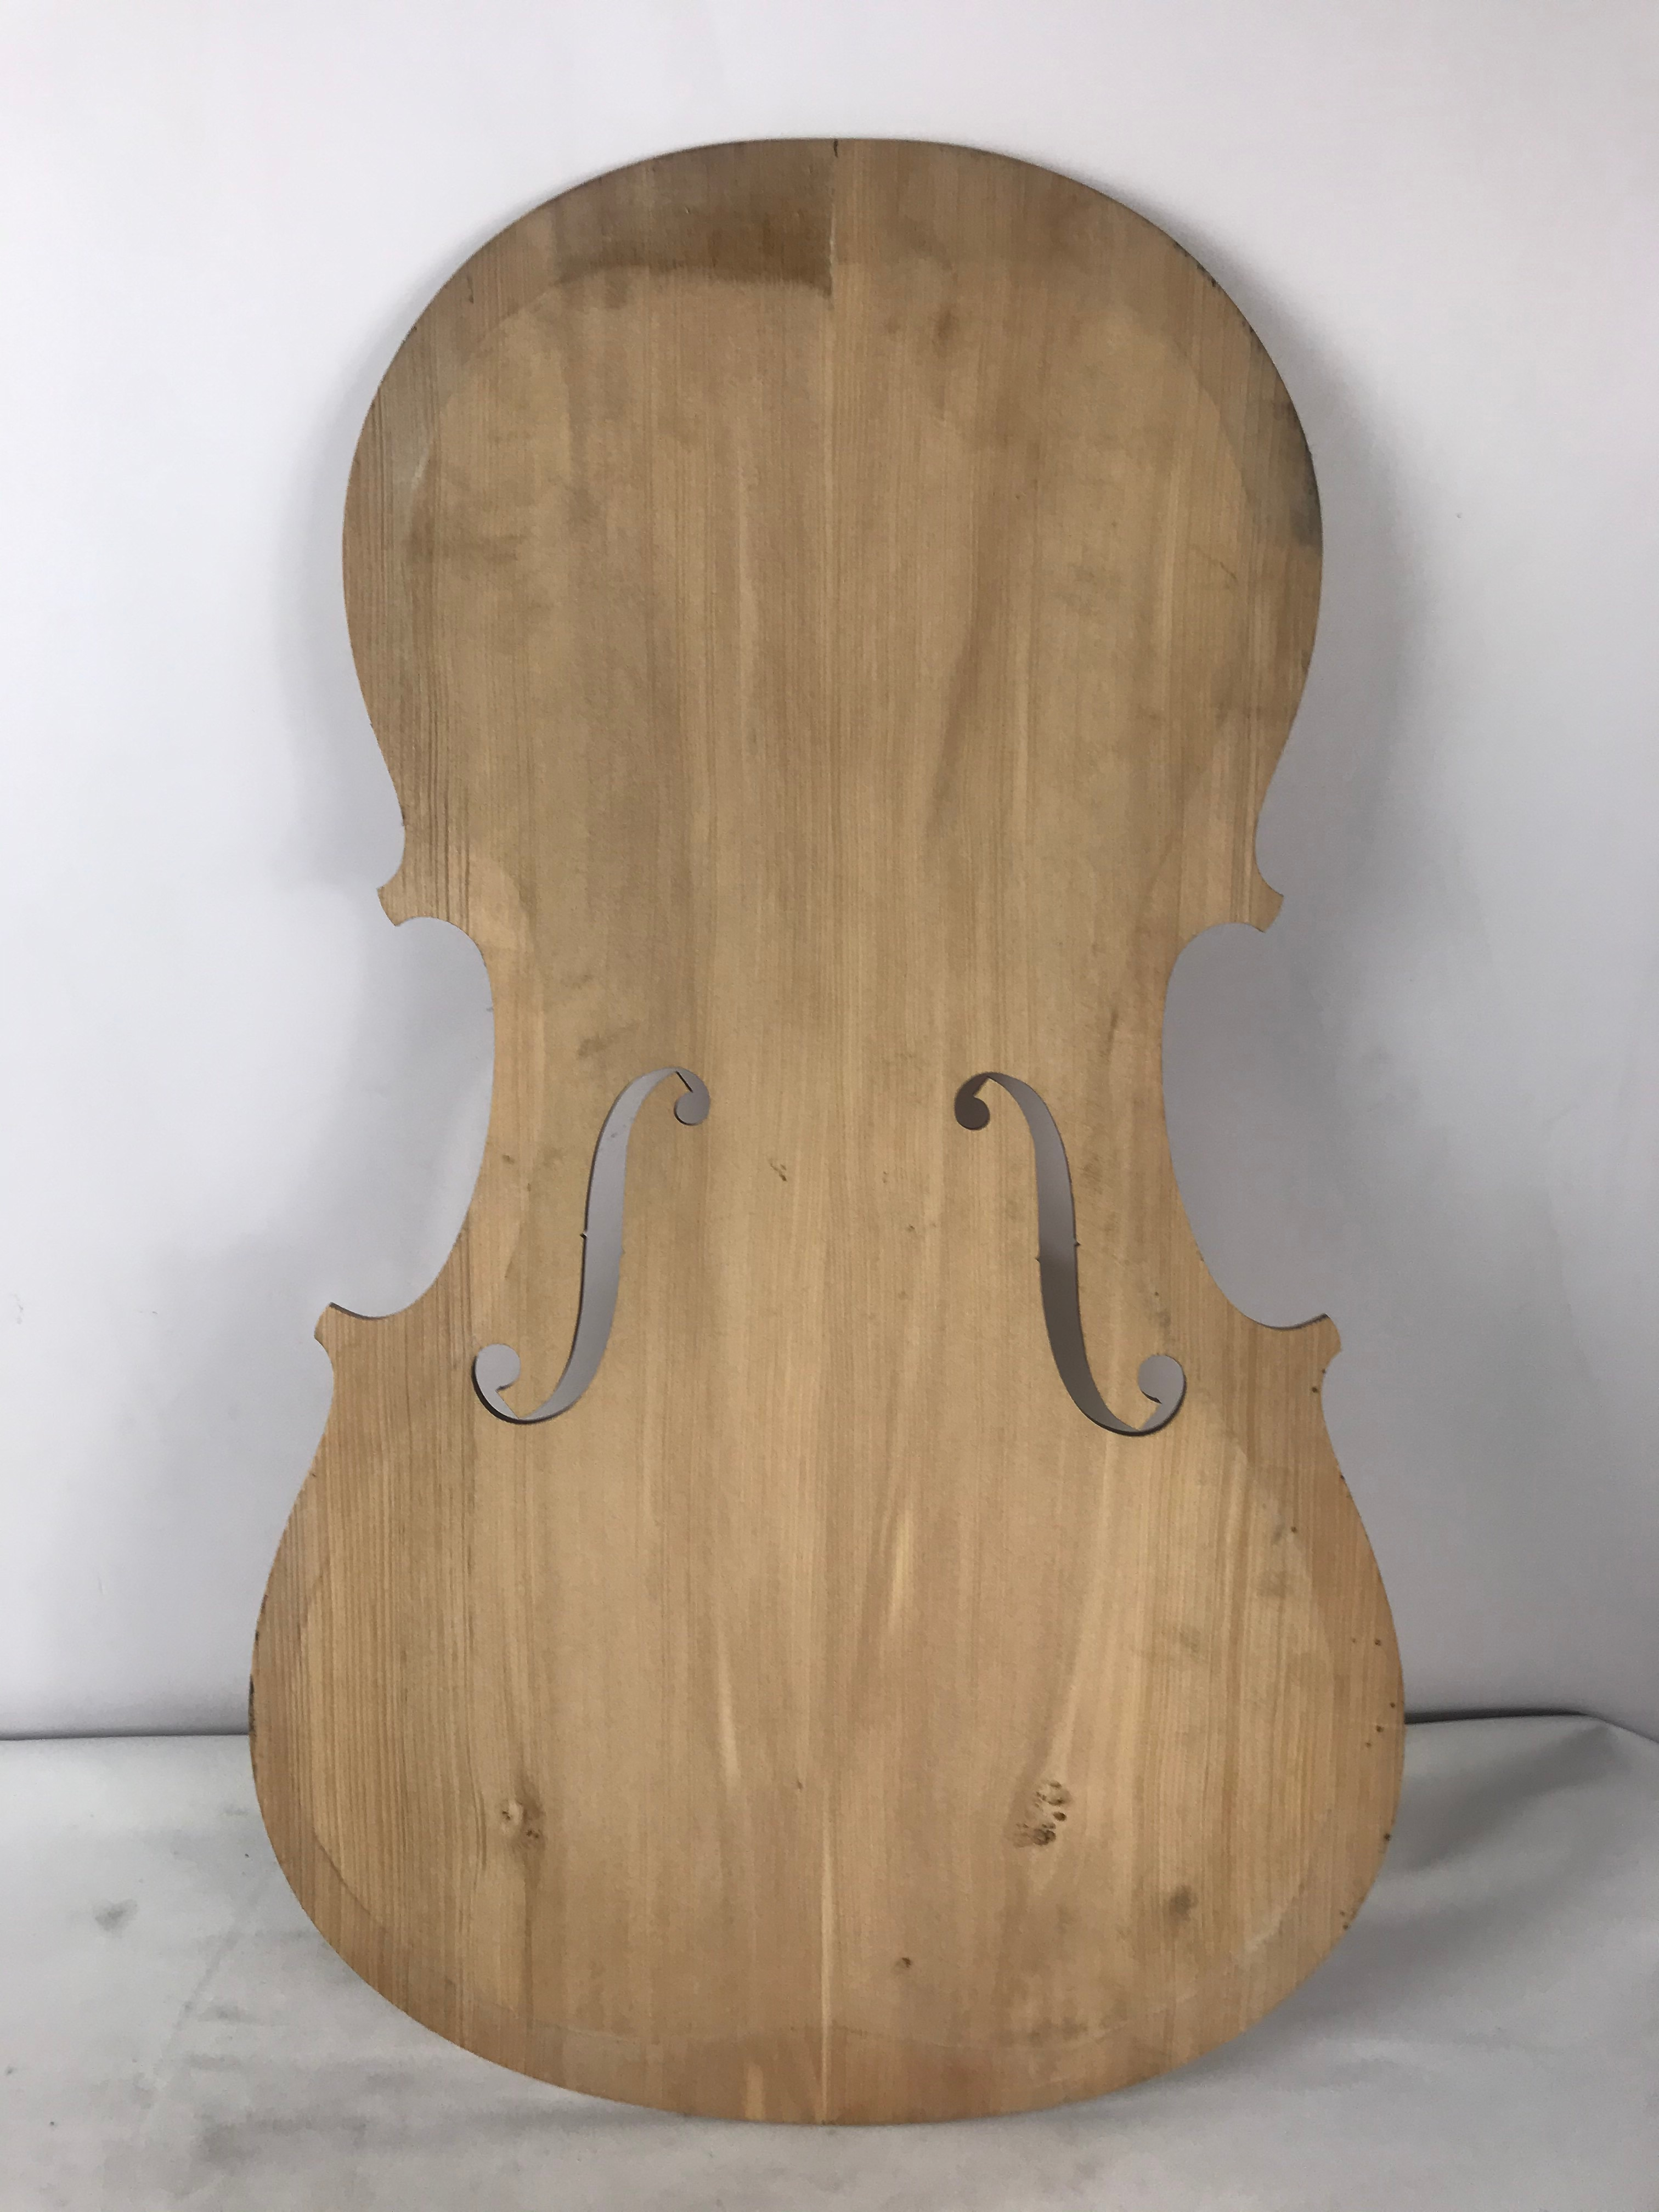 Art Drawing on Cello Traditonal Chinese Realistic Painting 1/4 Cello Panel Hand Painting on Spruce Wood enlarge